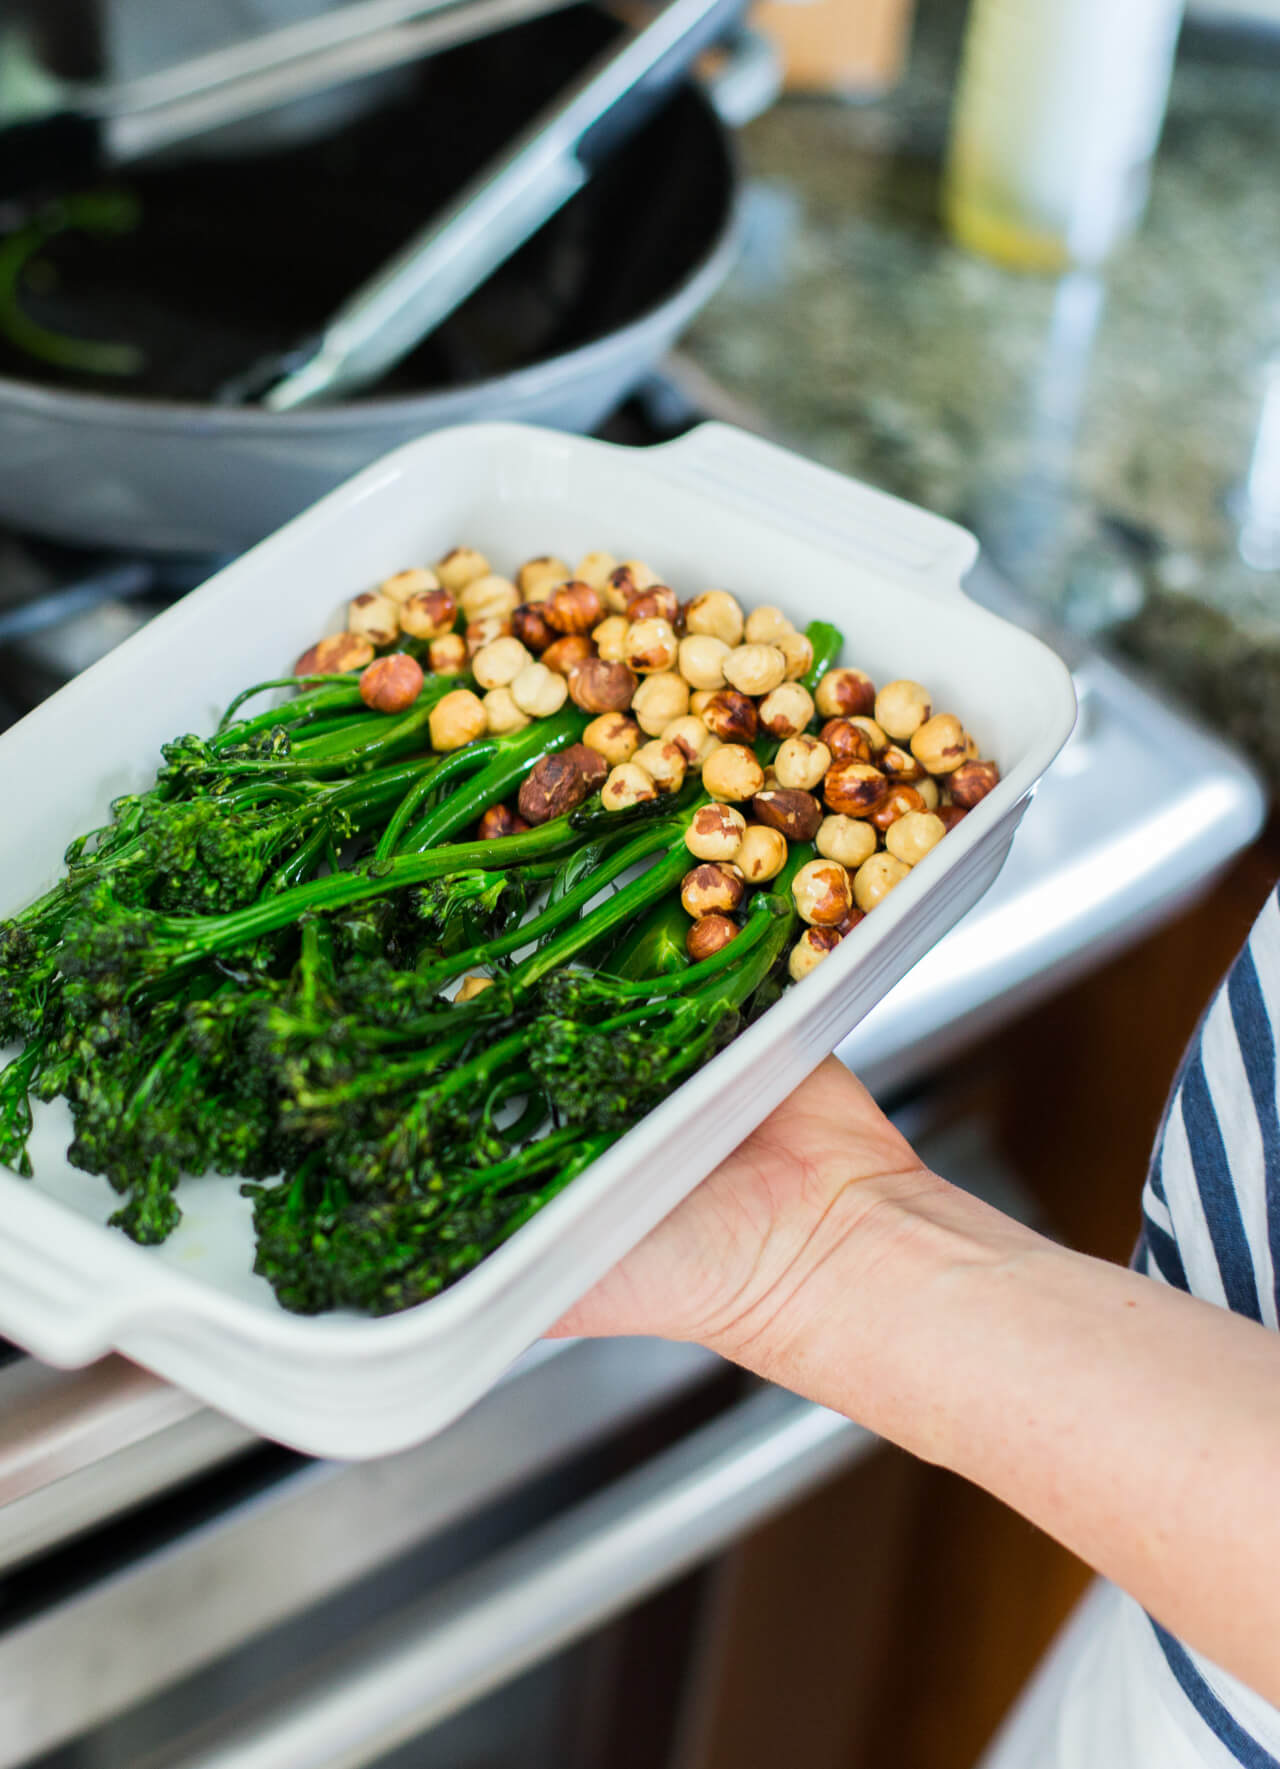 get the recipe for this easy and healthy roasted broccoli side dish